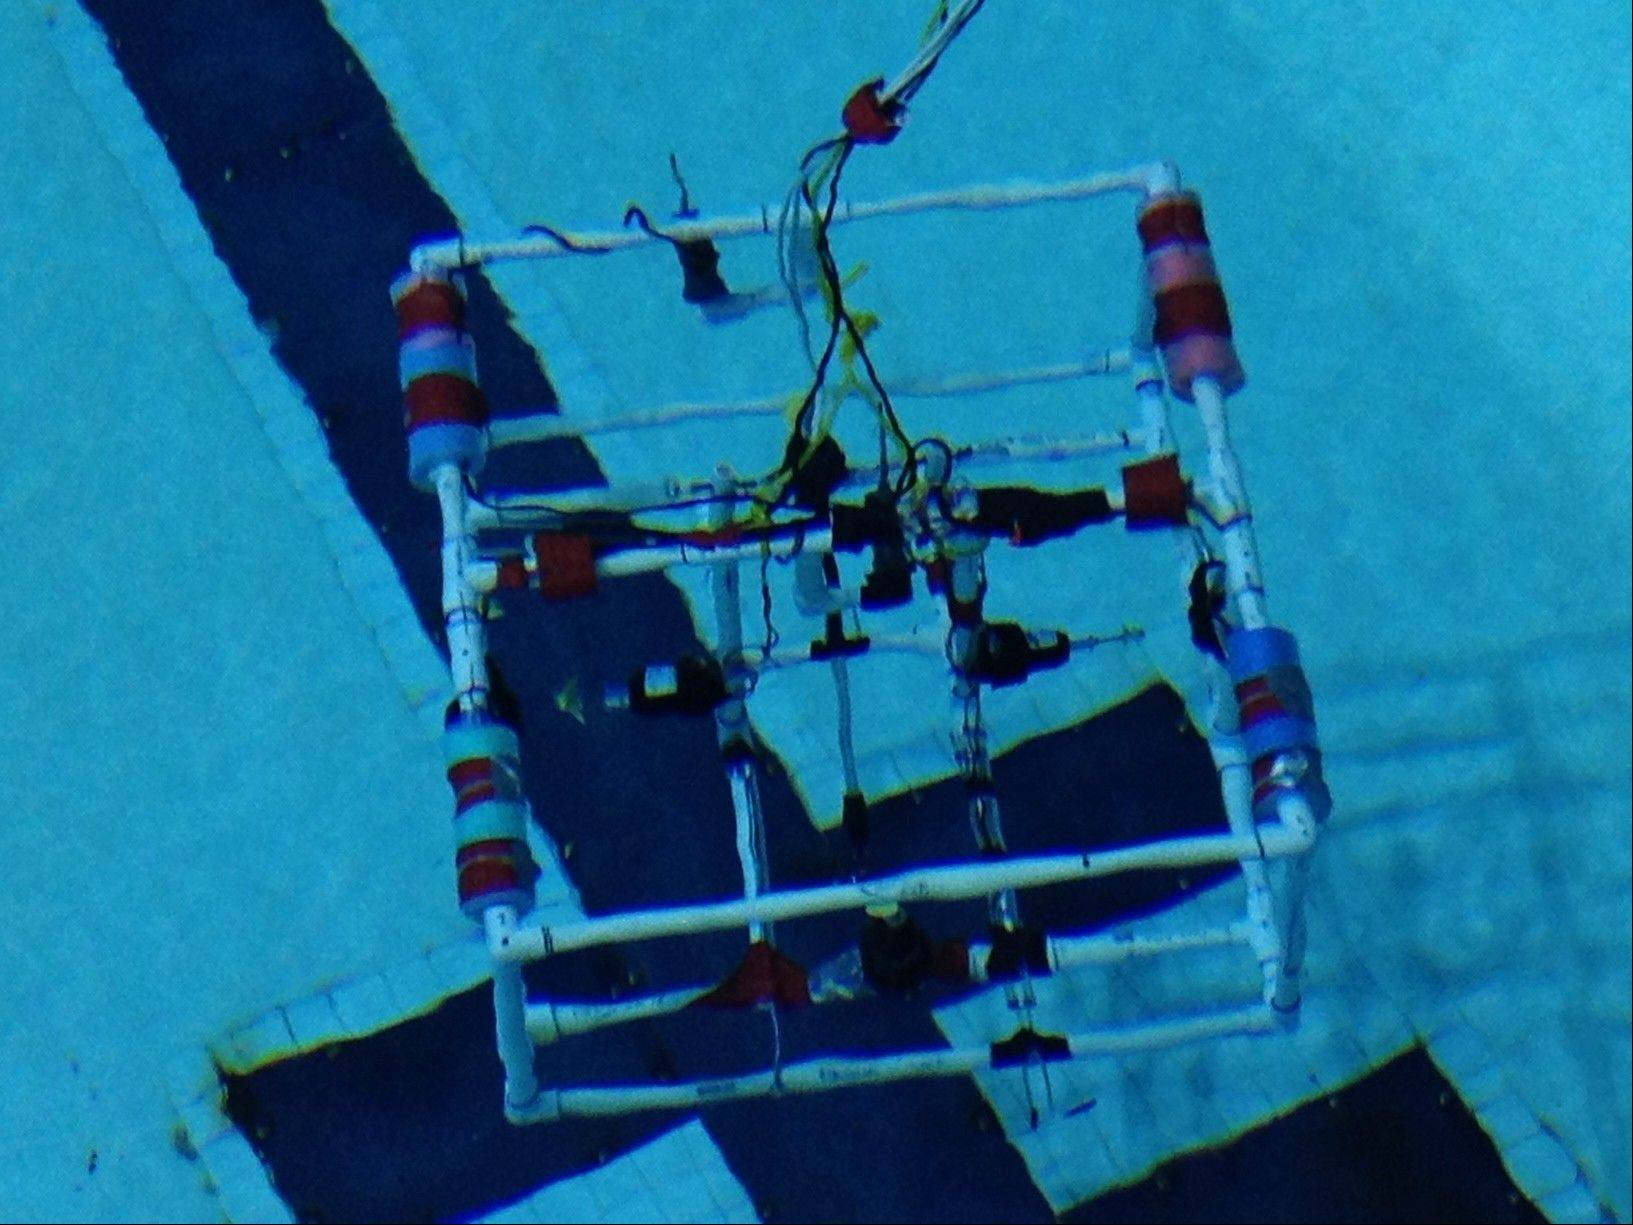 The underwater remotely operated vehicle built by the six members of Naperville North High School's marine engineering team cost $200 and featured such materials as PVC piping, duct tape, pool noodles, wiring and a motor.